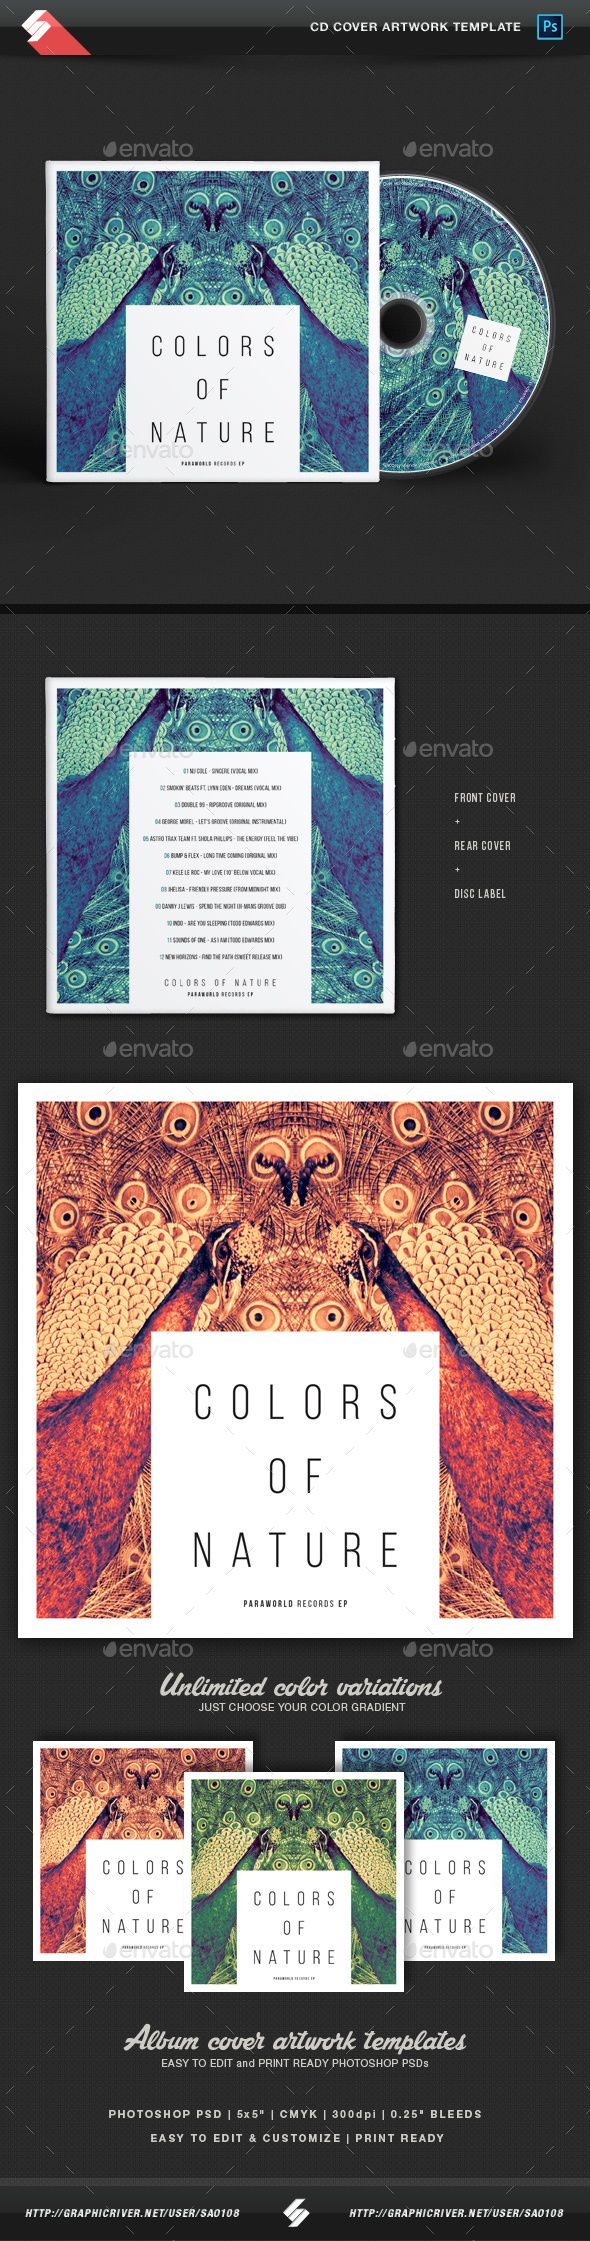 Colors of nature creative cd cover artwork template